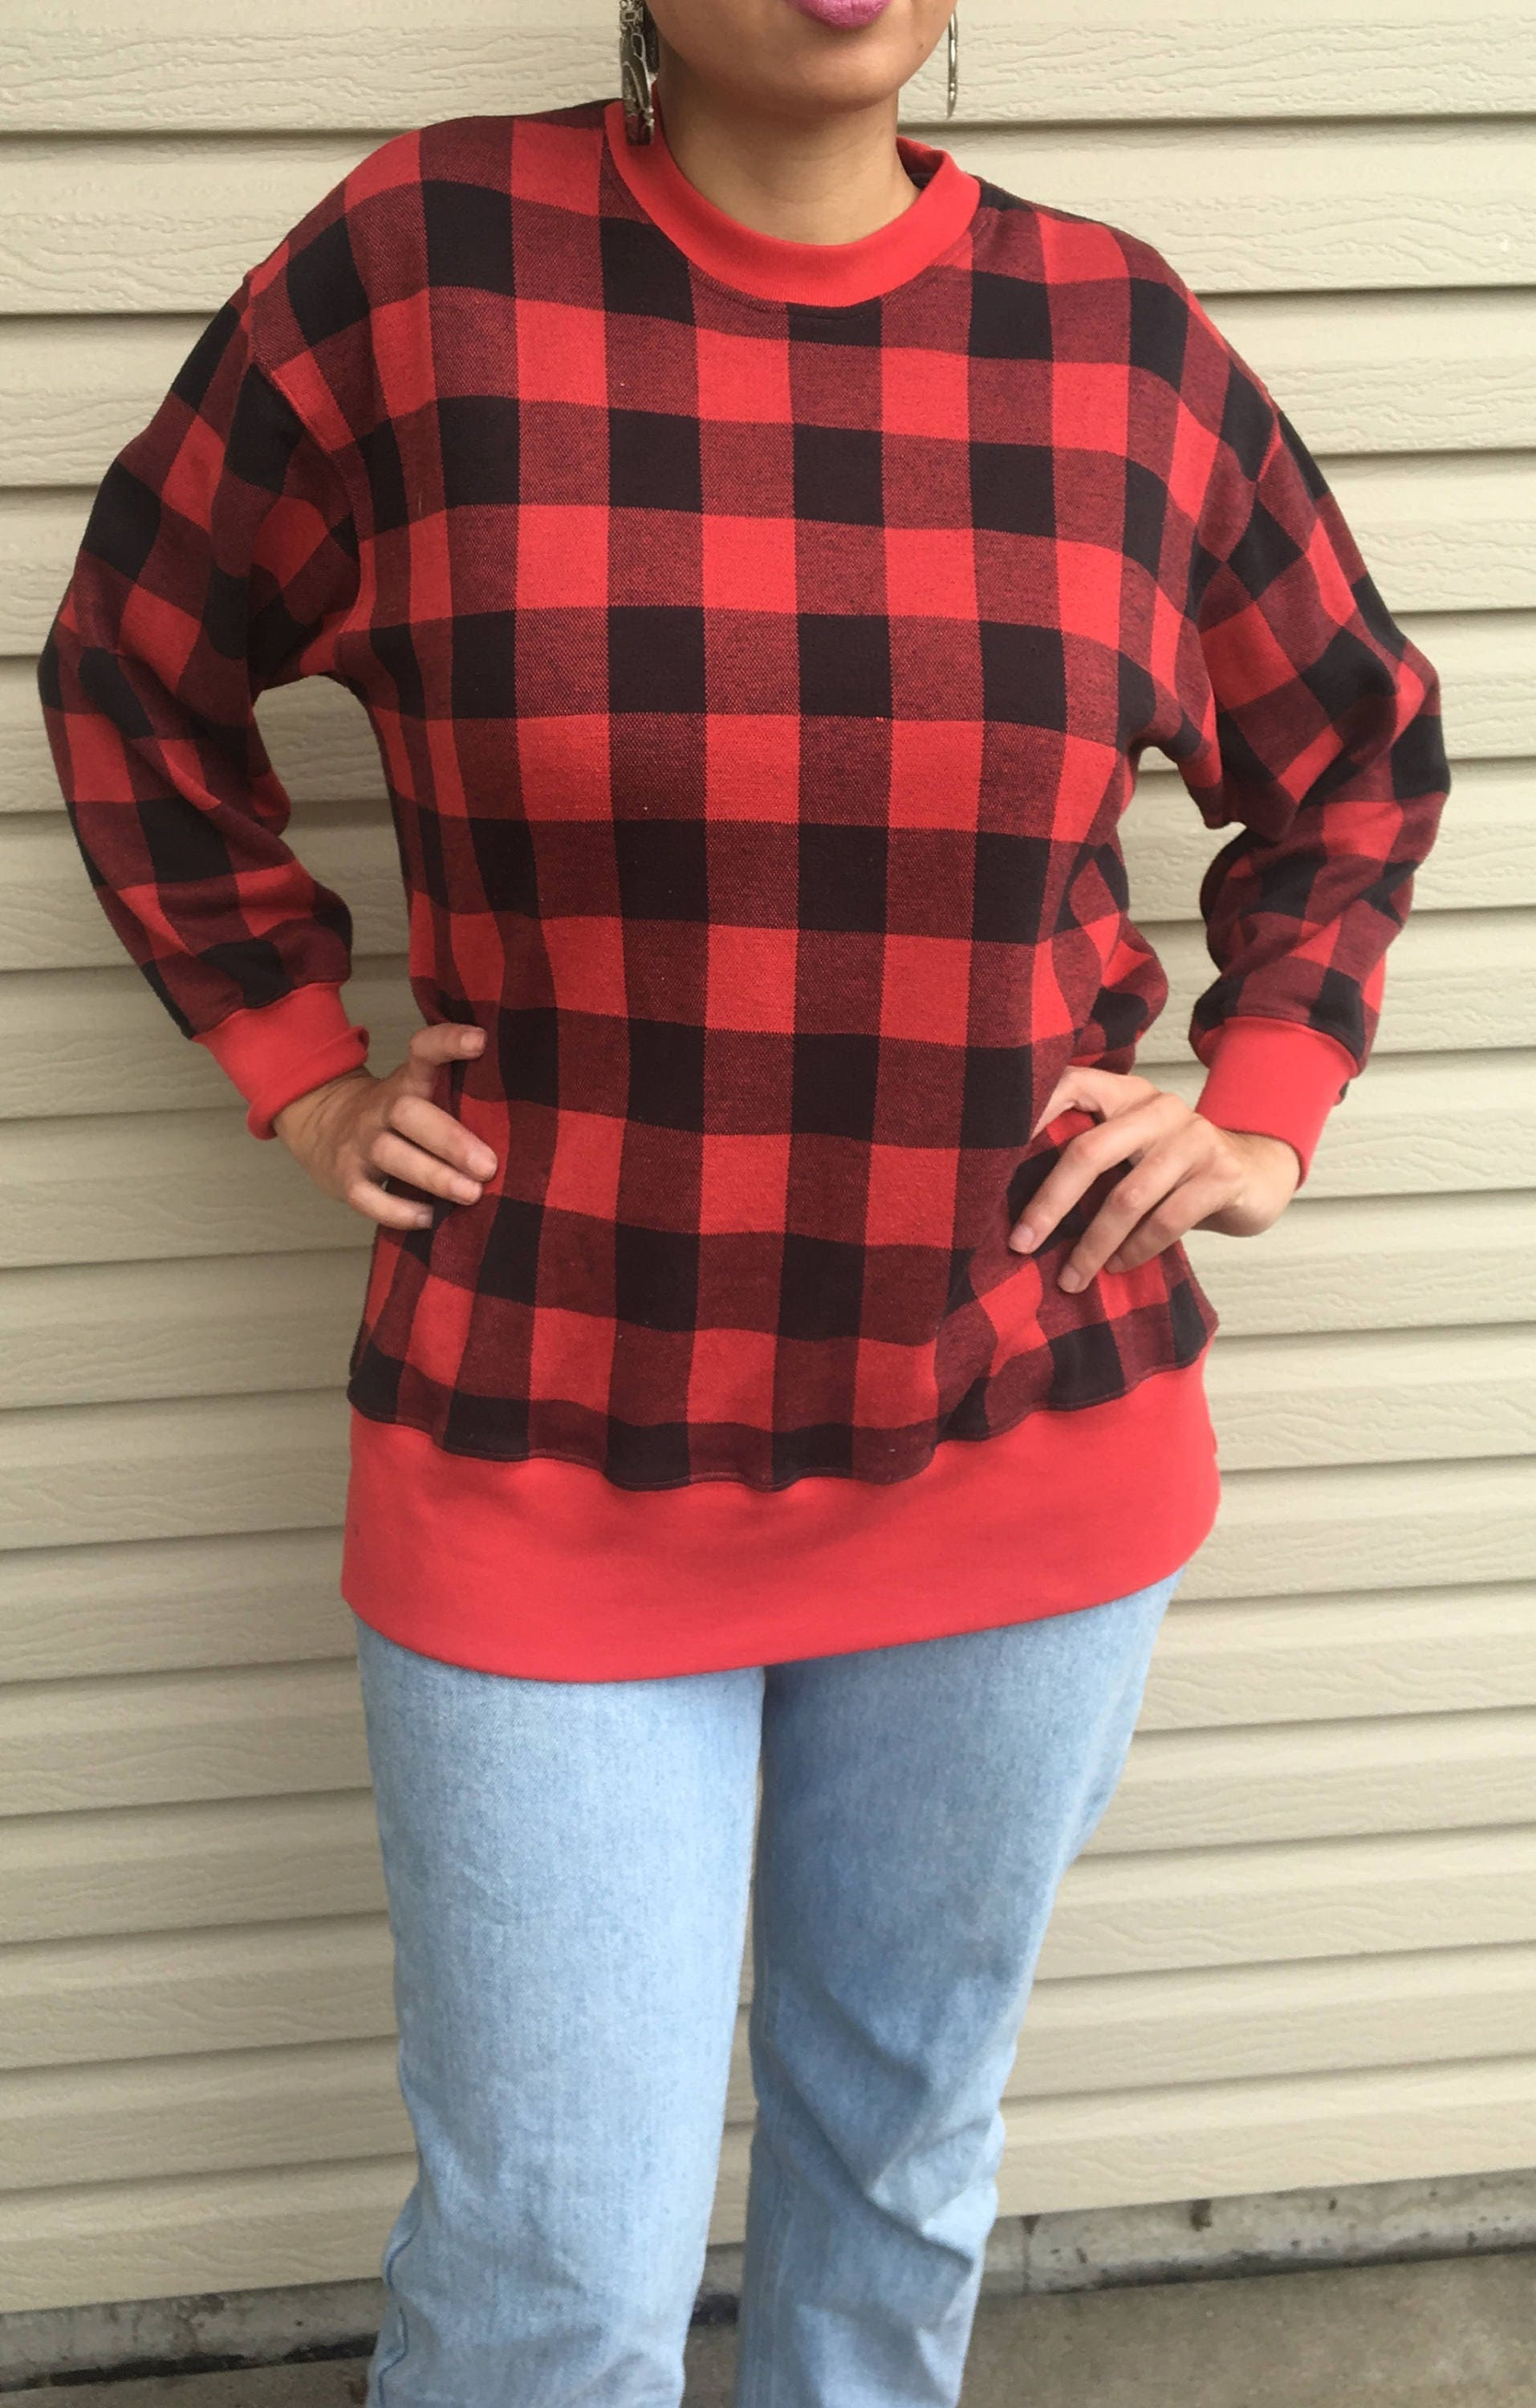 db5af5f95 Vintage 90 s red and black checkered sweater Blanche